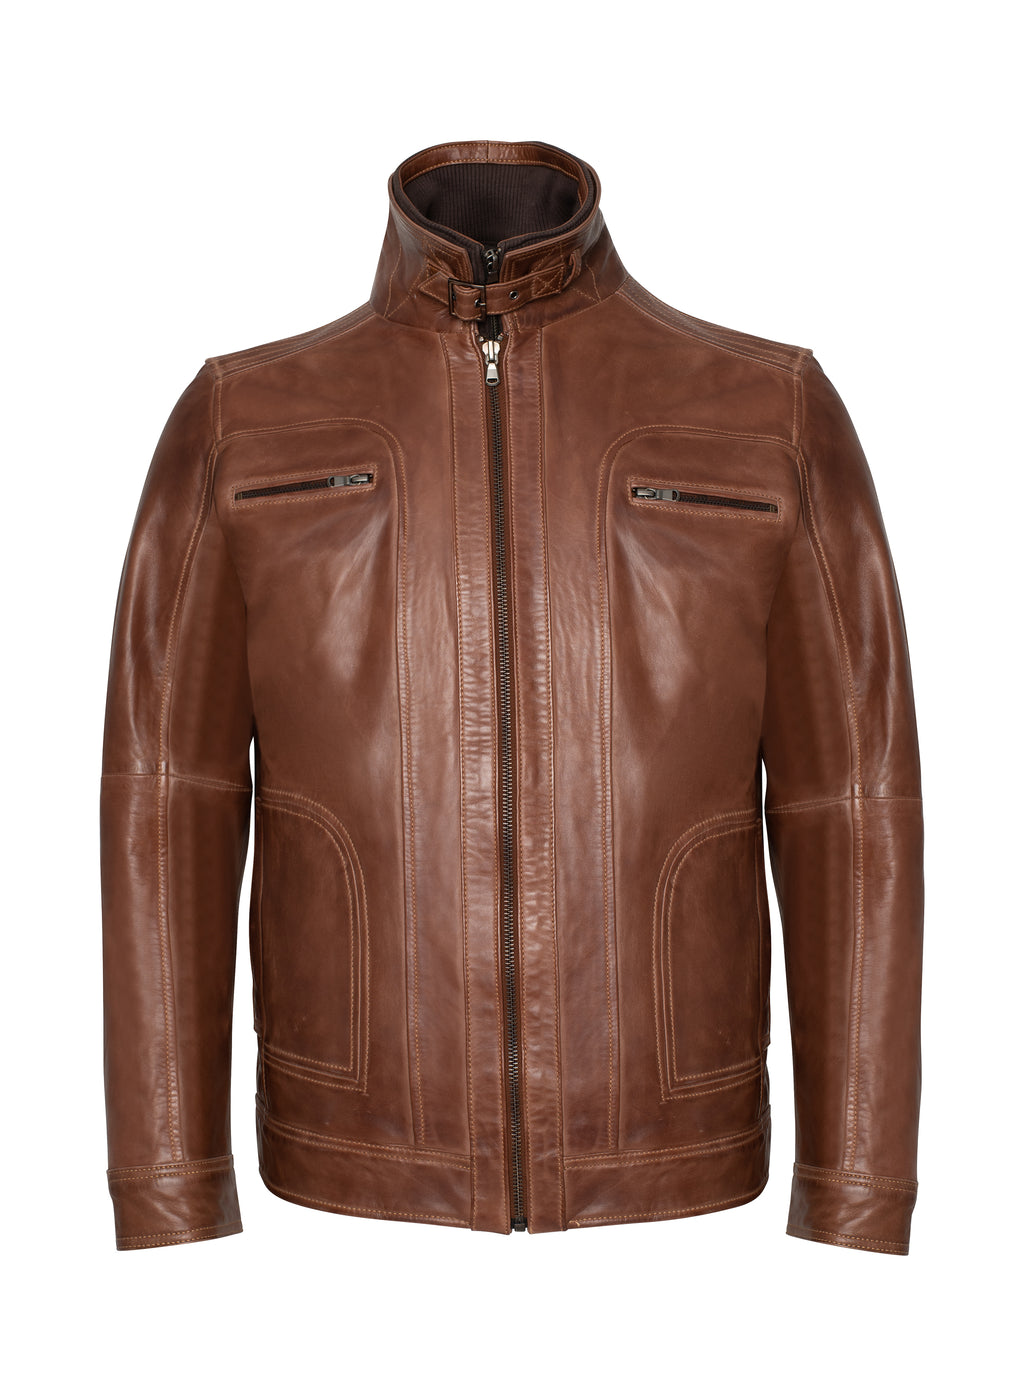 Lamarque - Leather Jacket Camel